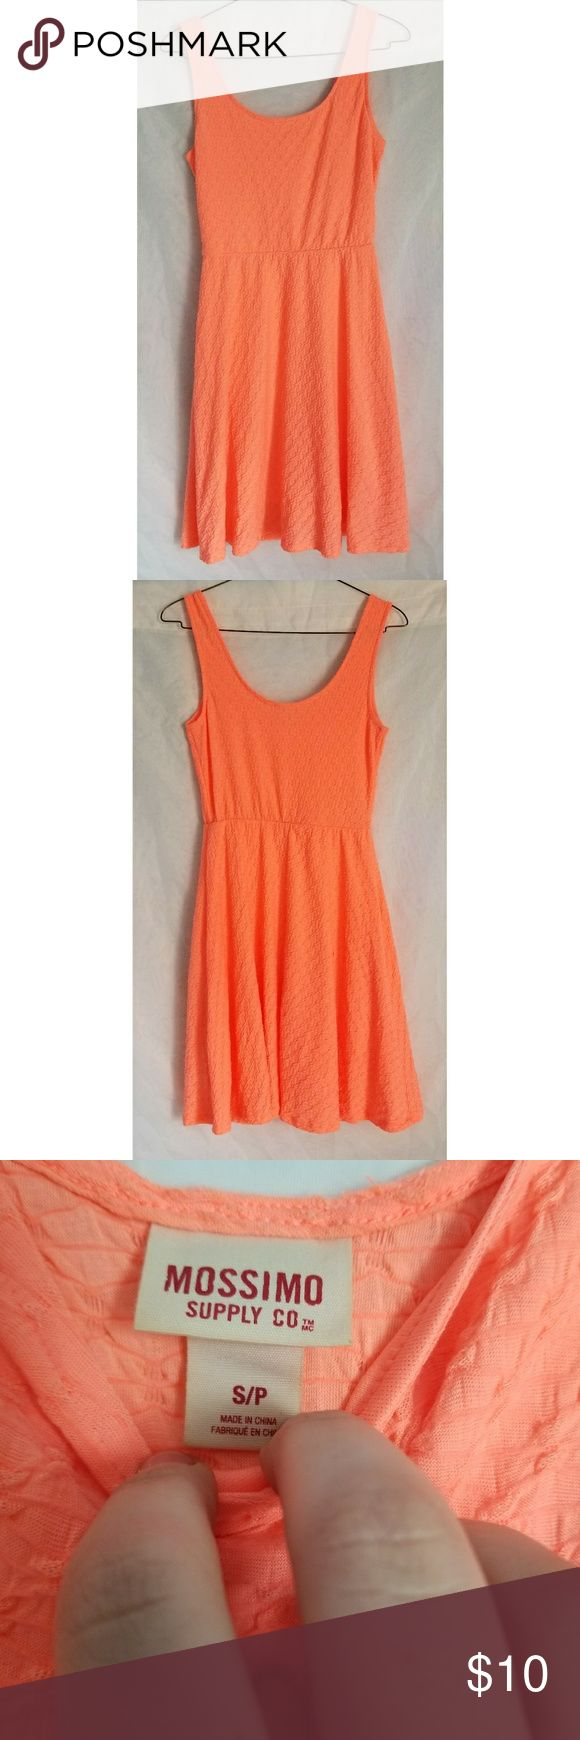 Mossimo Neon Orange Mini Dress Super soft mini dress. It is like a highlighter orange color. Size small petite Mossimo Supply Co. Dresses Mini